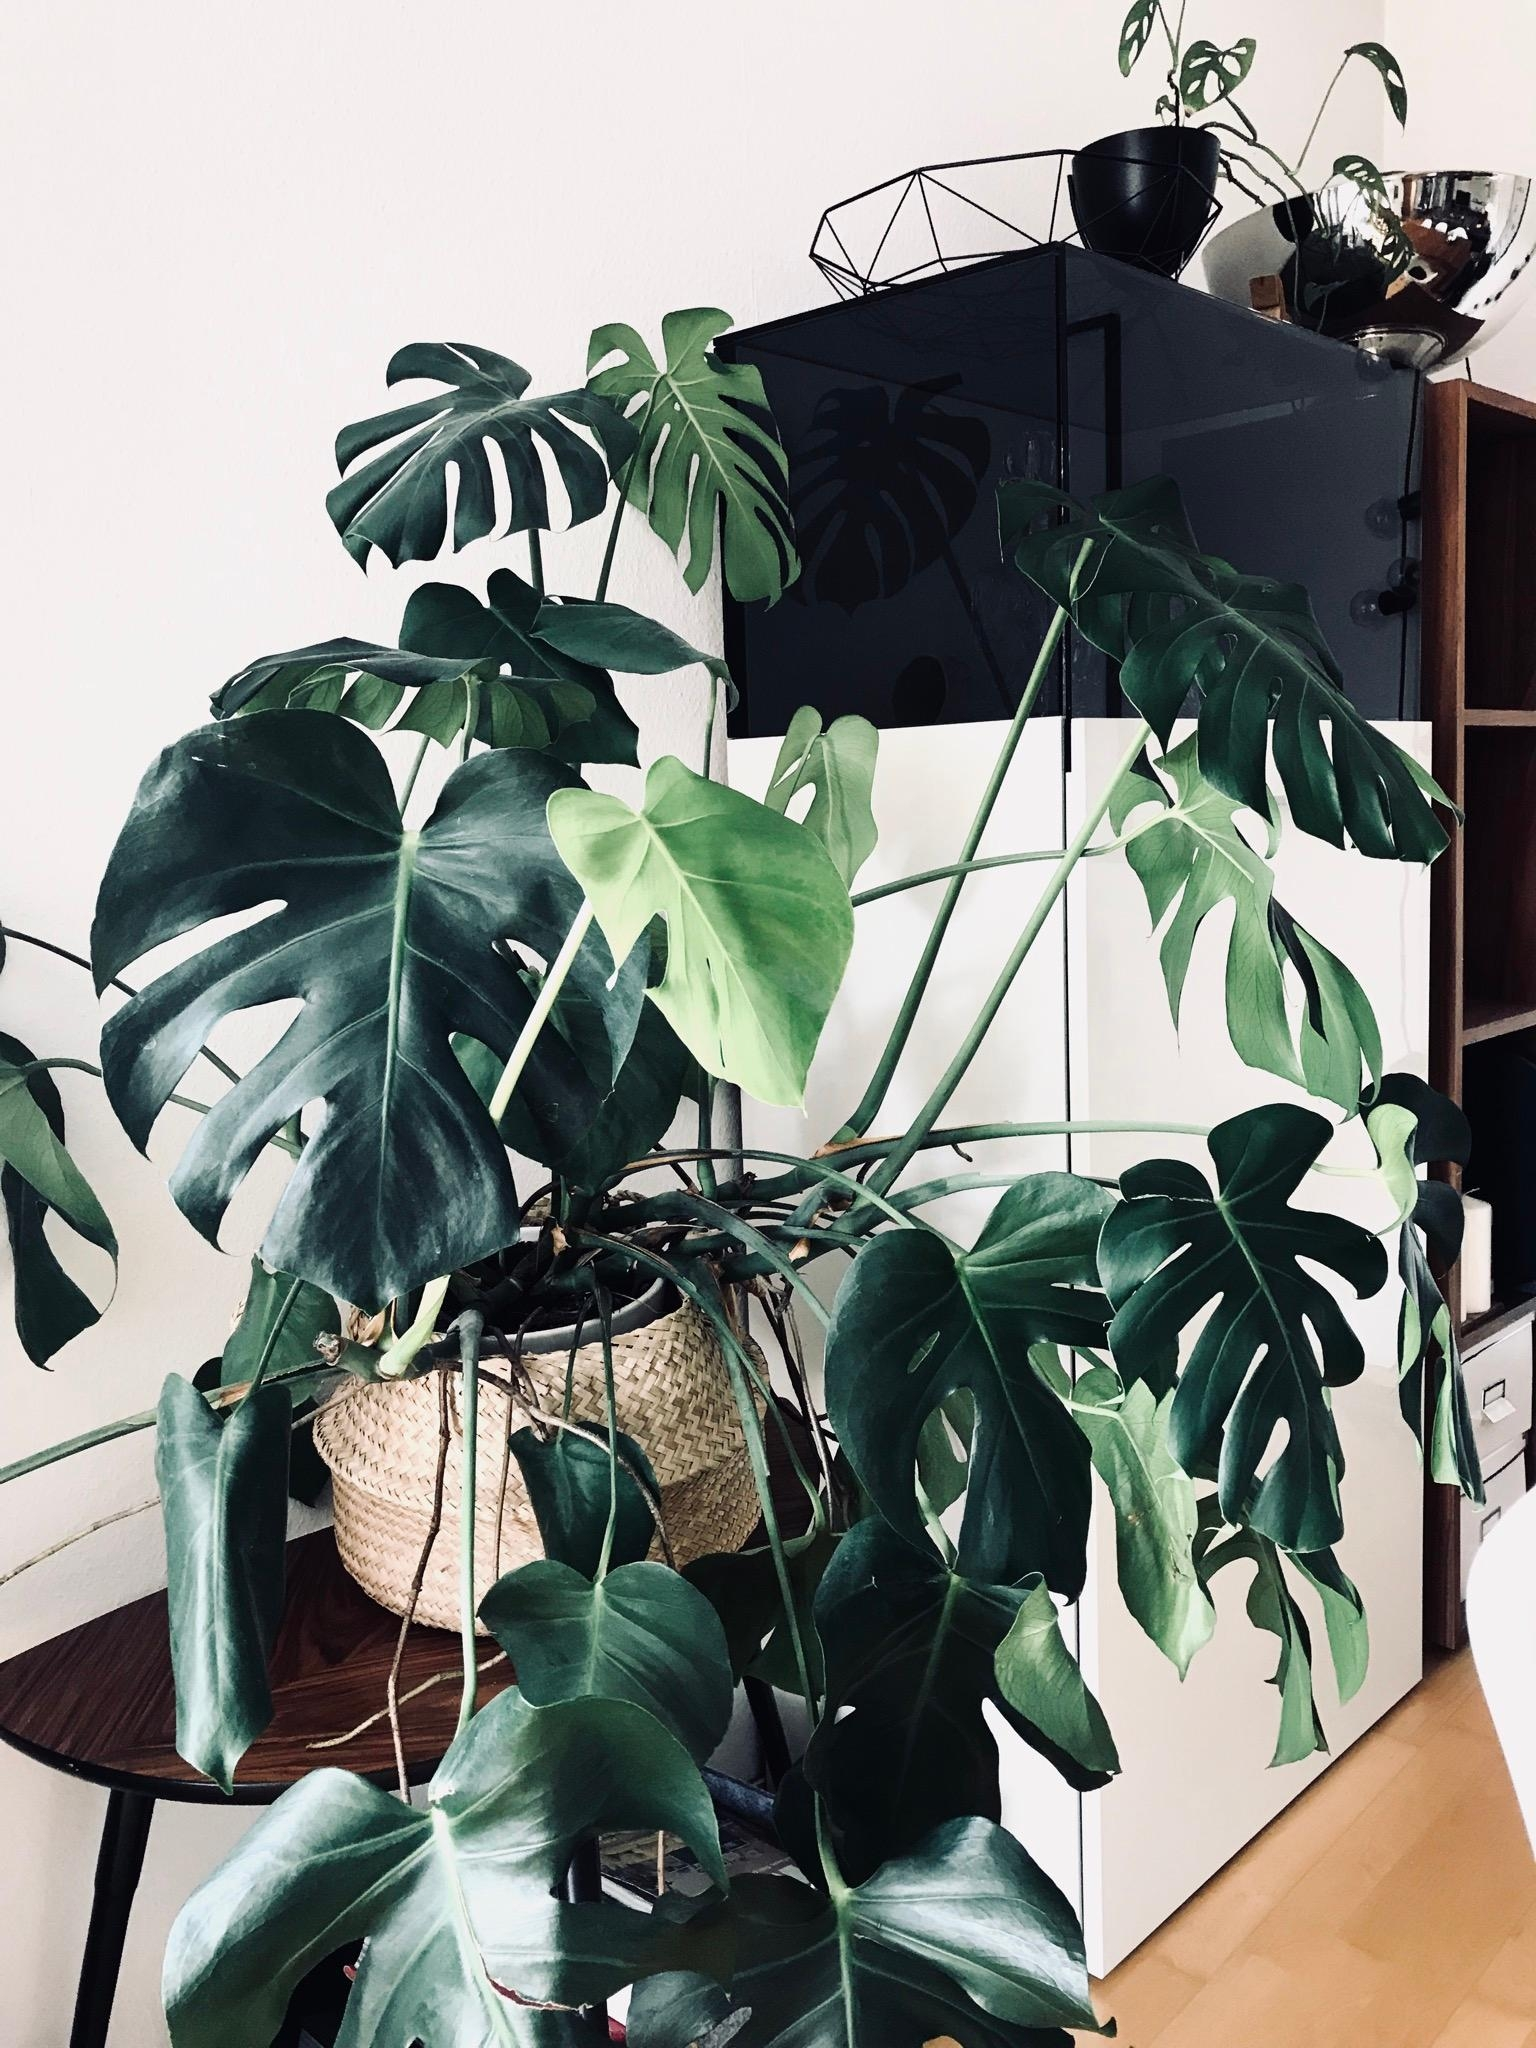 Monsteraliebe. 🖤